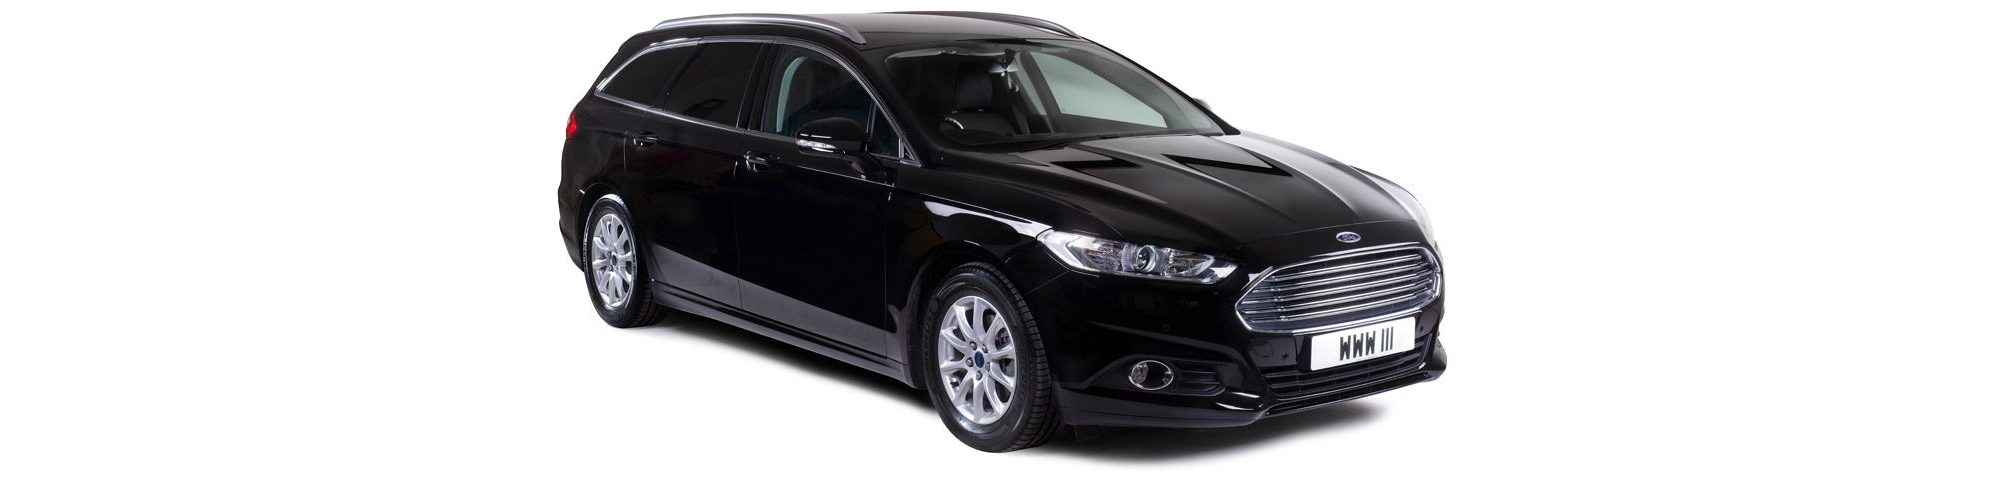 Ford Mondeo Hearsette®